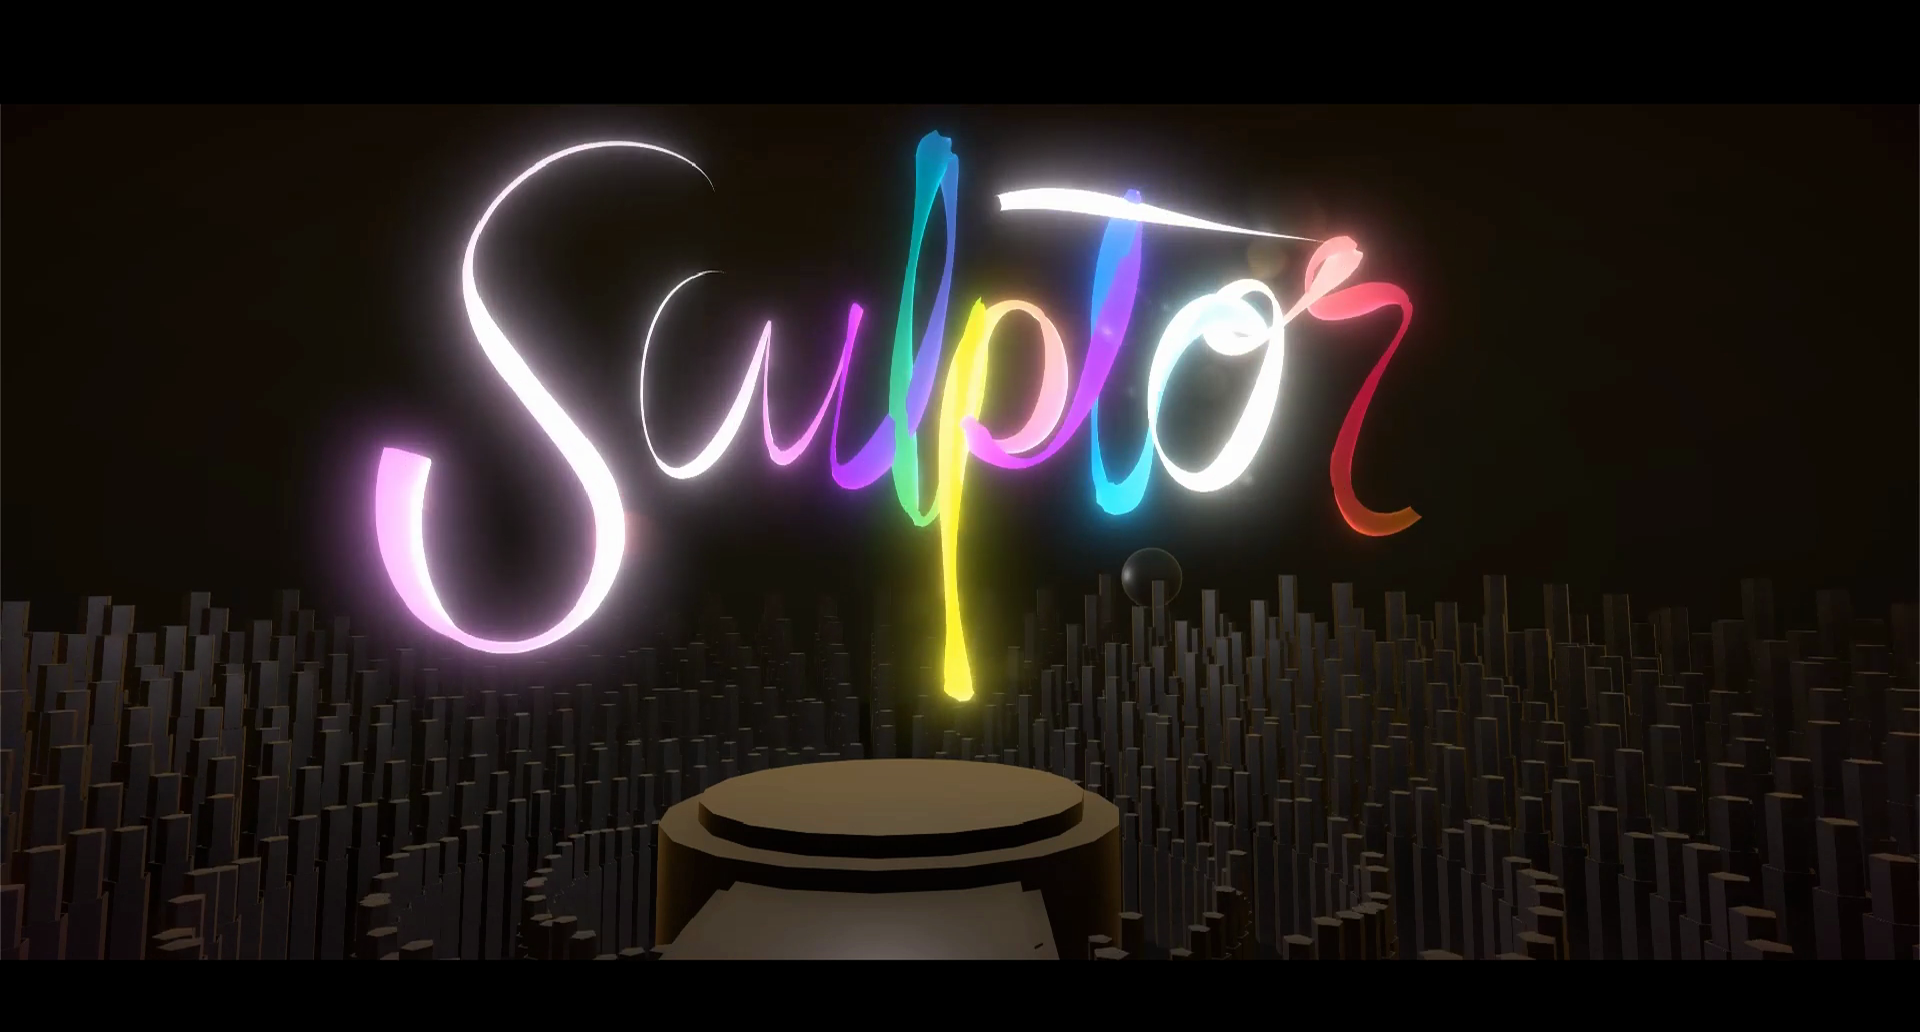 SculptorTitleScreen.png